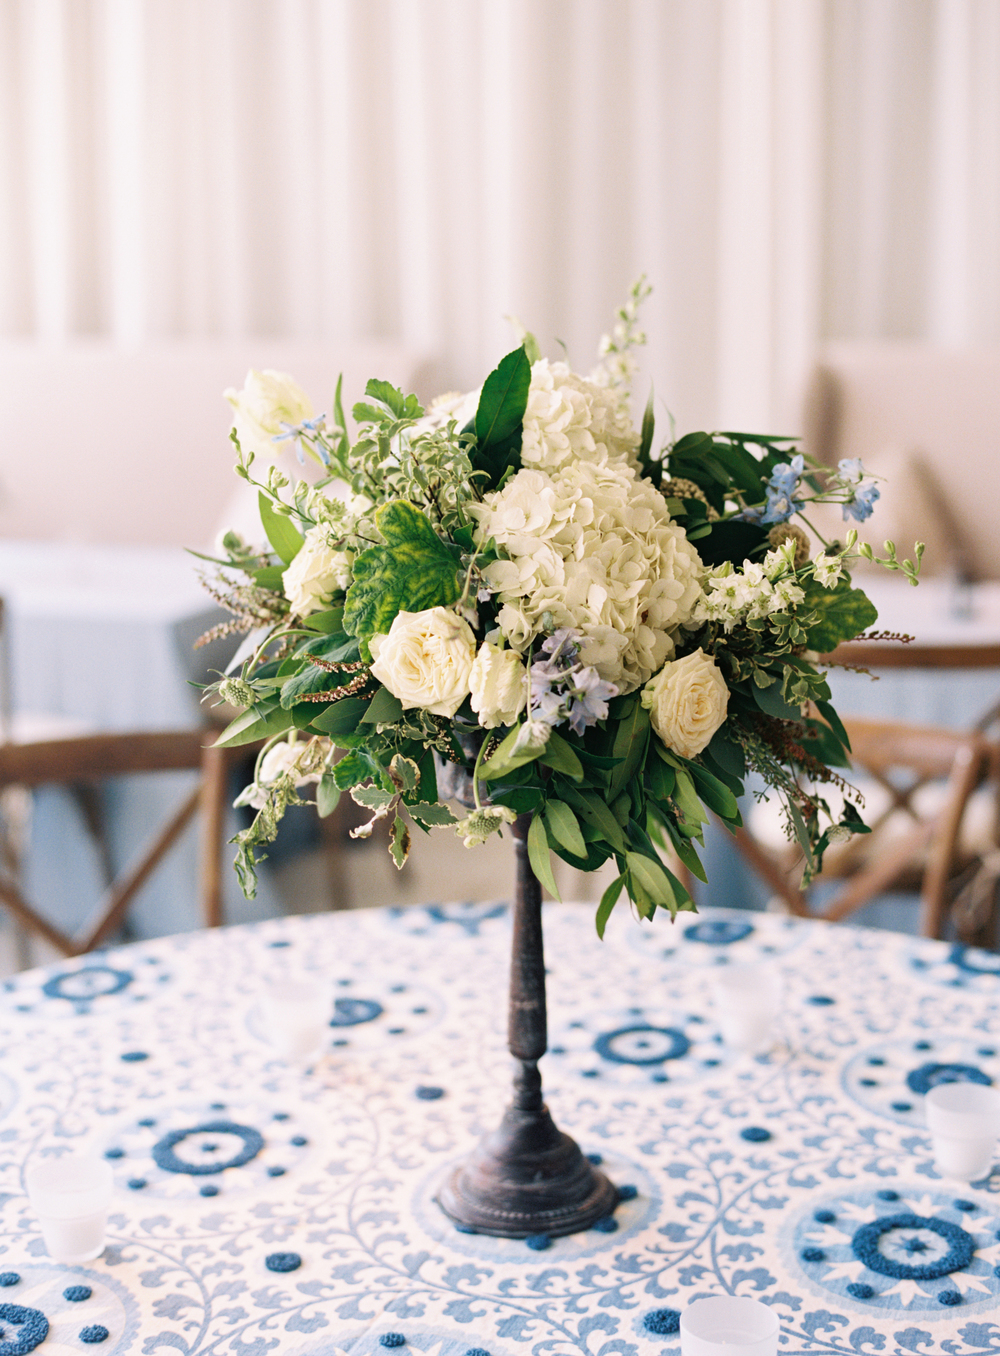 Madison cody wedding — rosemary finch floral design